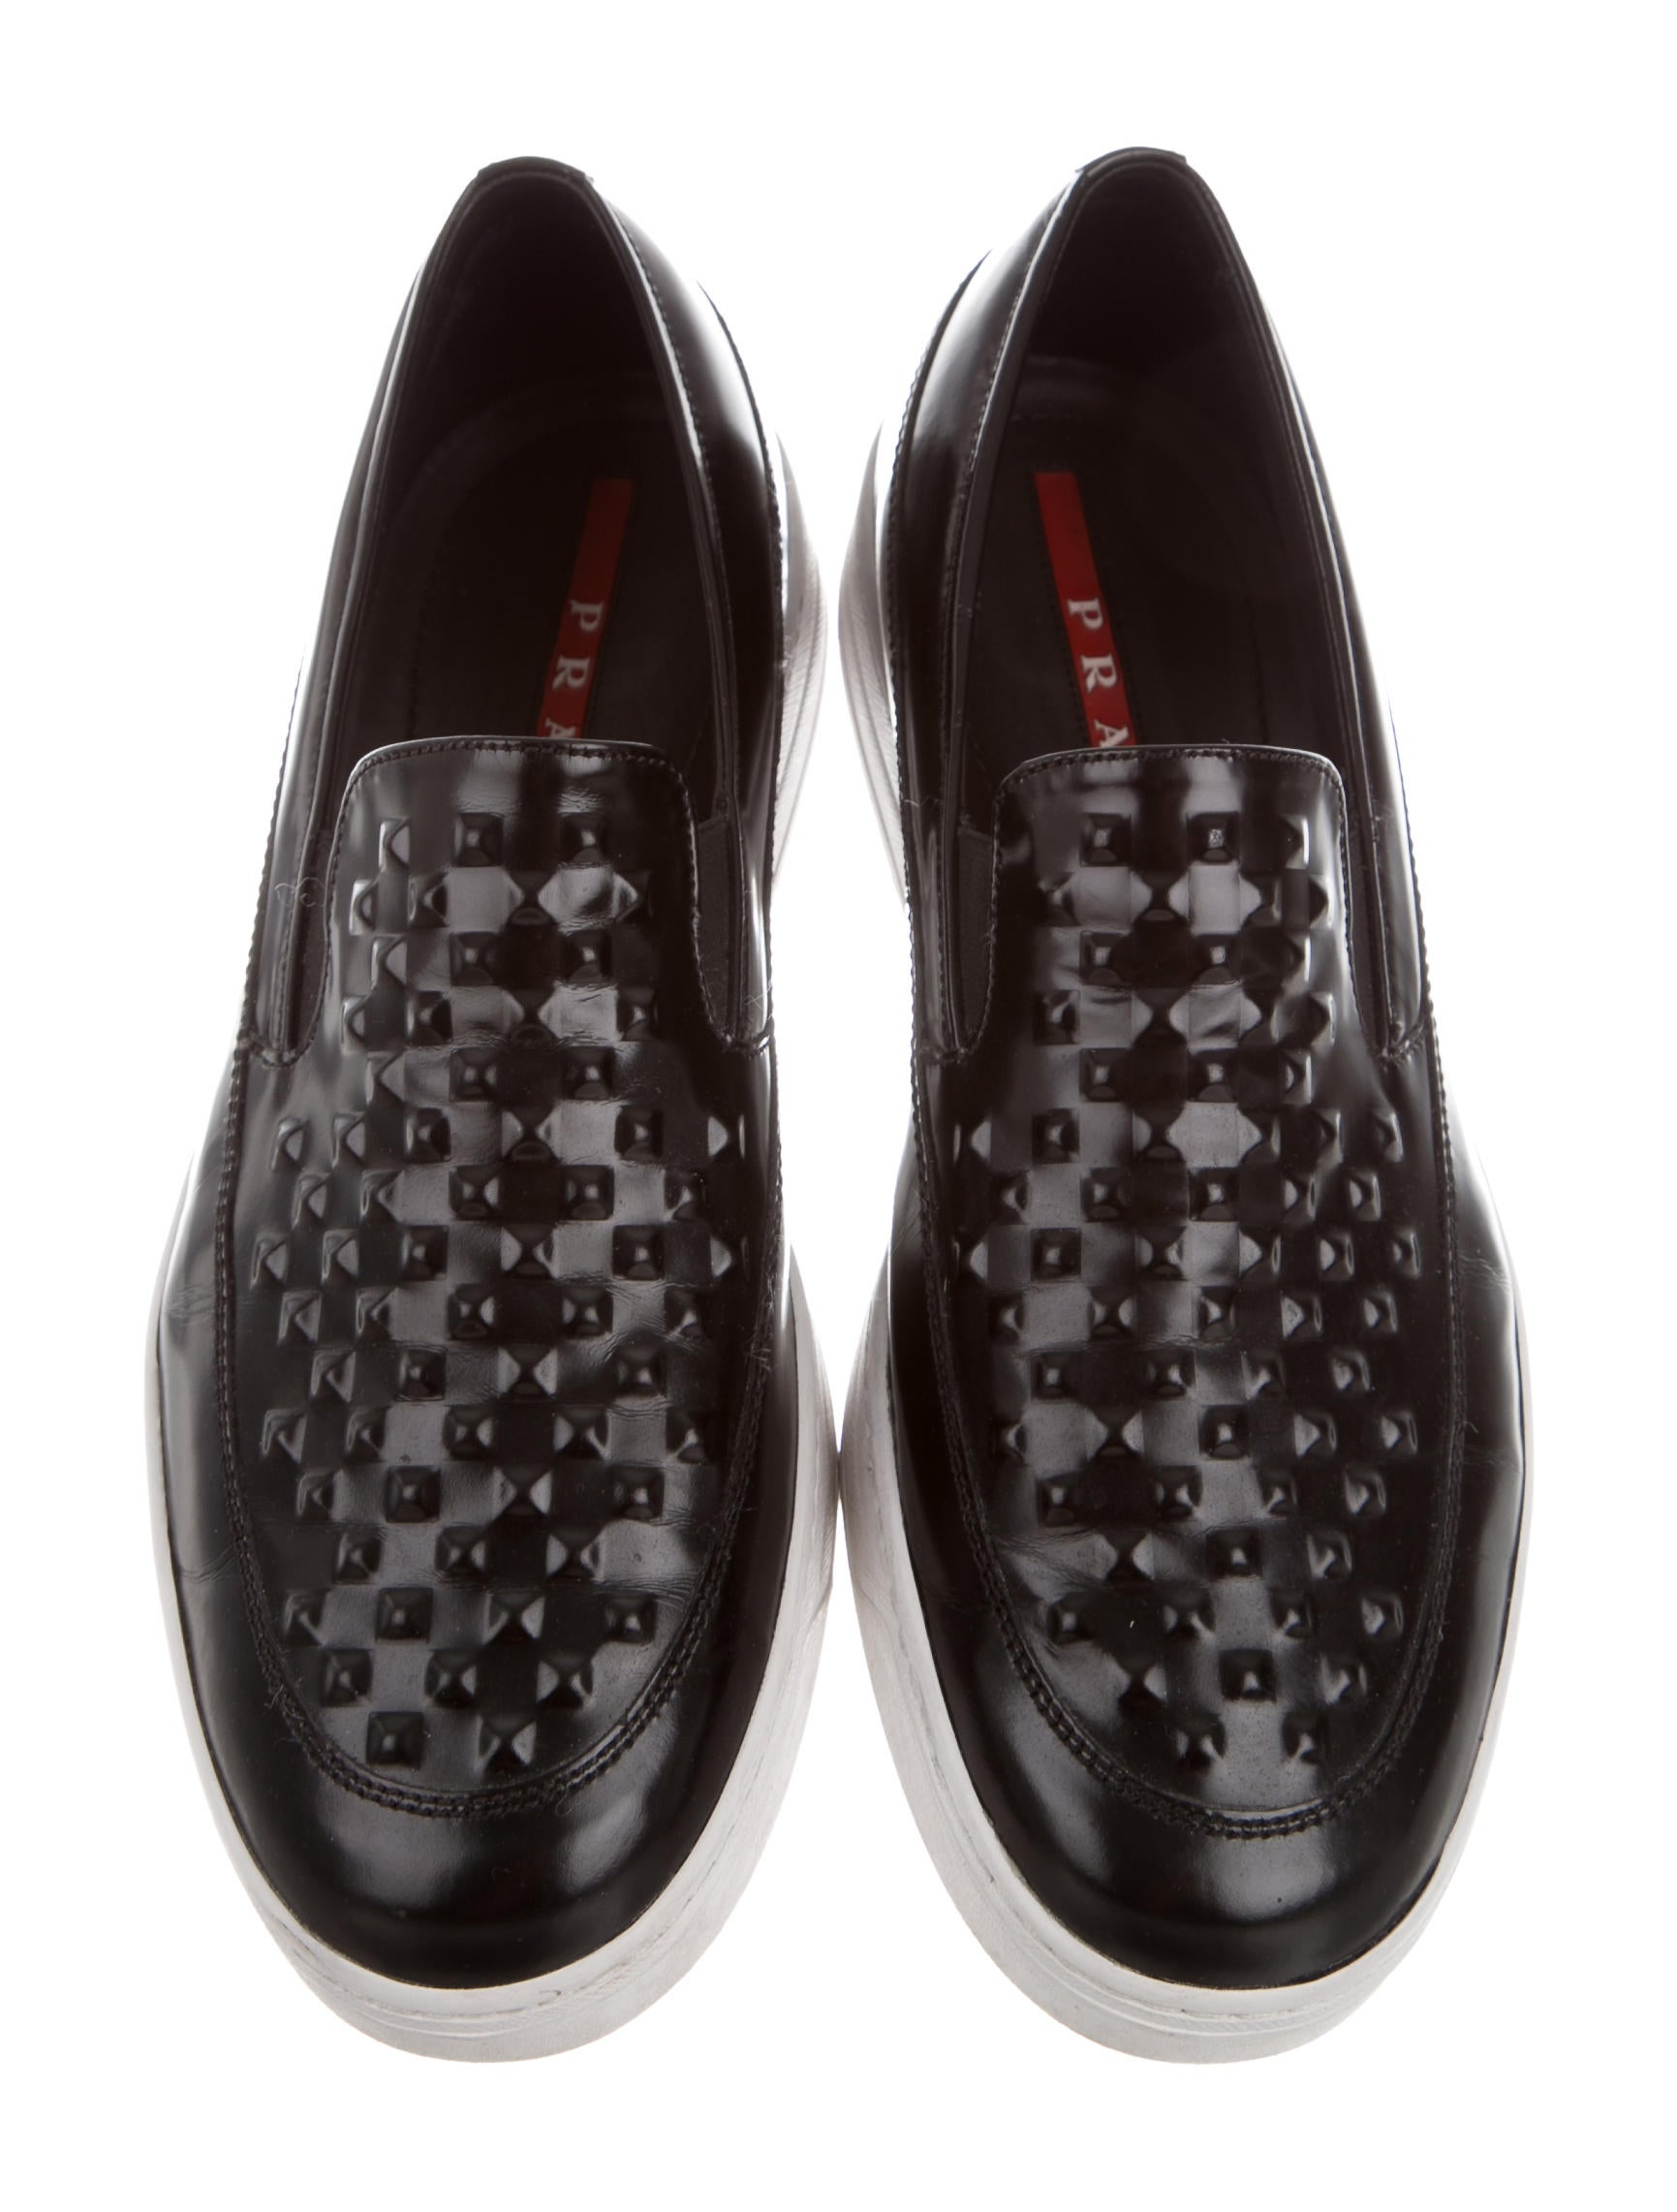 prada sport studded leather slip on sneakers shoes